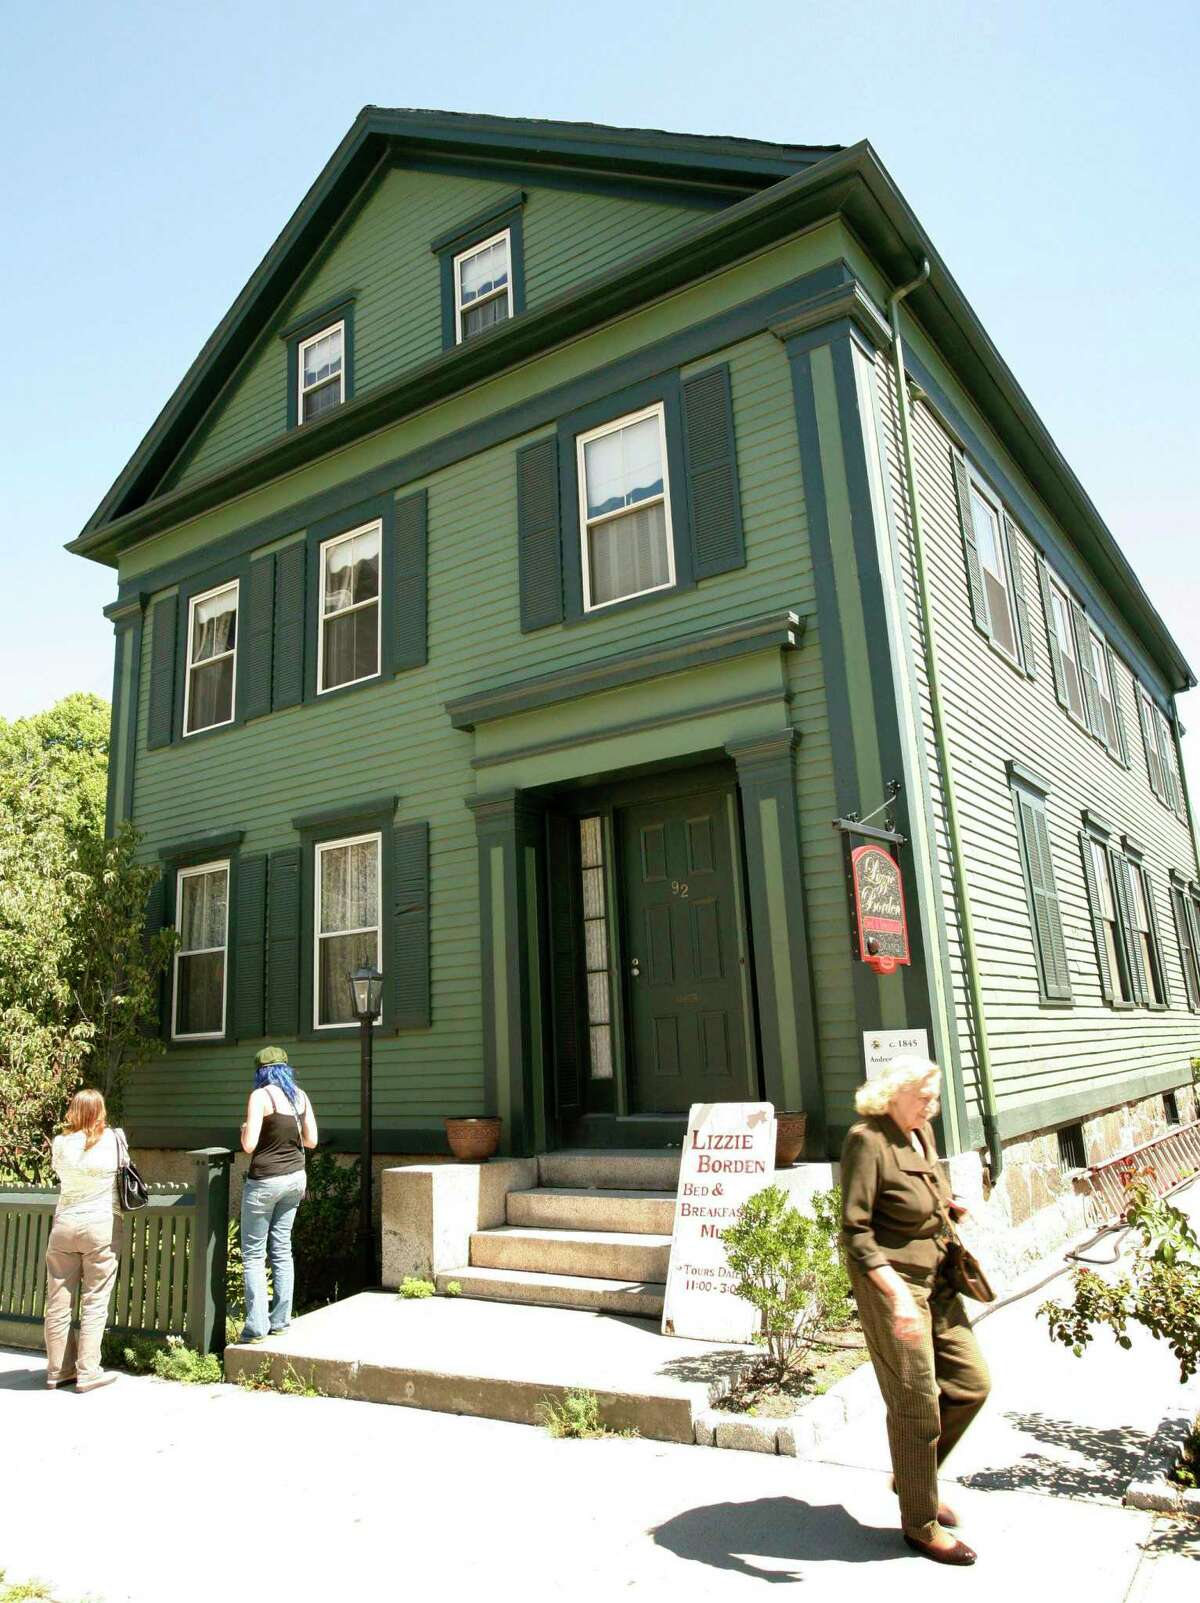 In this Aug. 20, 2008 photo, passers-by walk in front of the Lizzie Borden Bed and Breakfast, in Fall River, Mass.